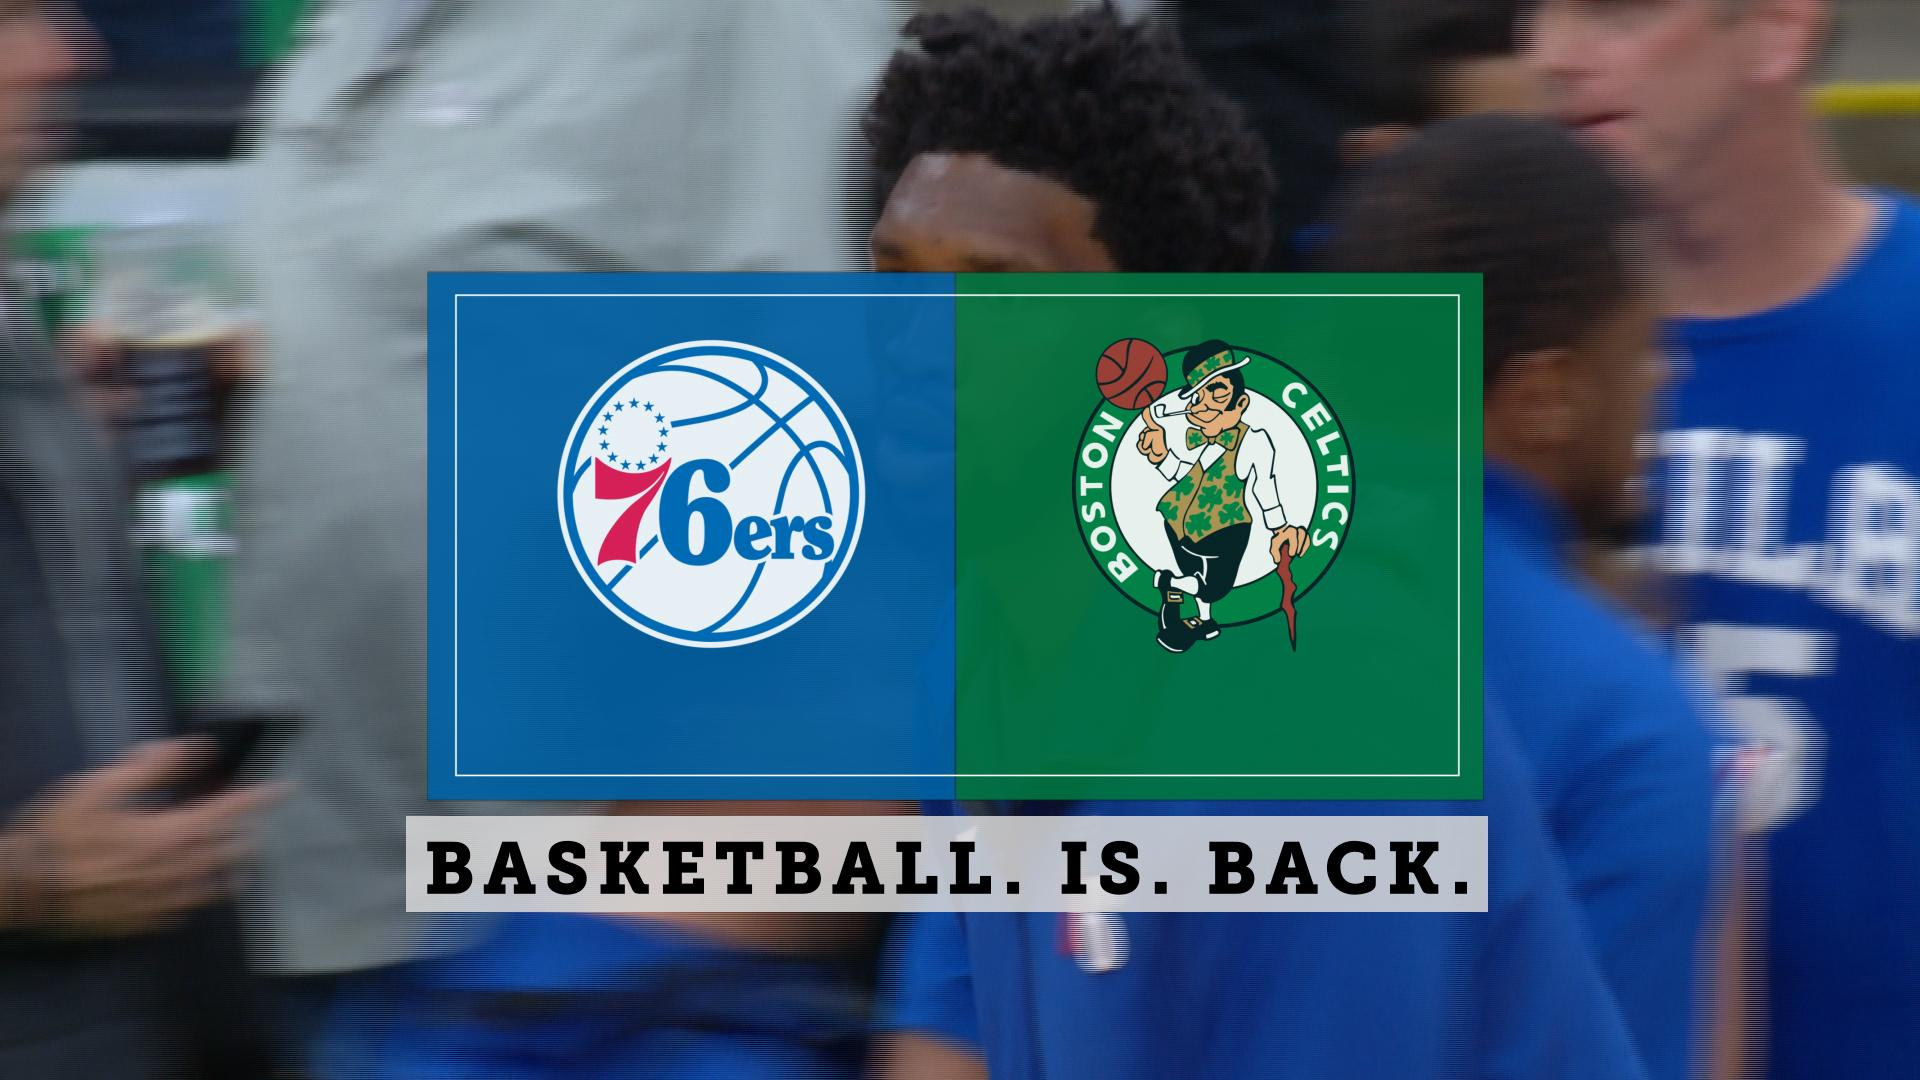 Unfortunately, the same old story for the Sixers loss to the Celtics